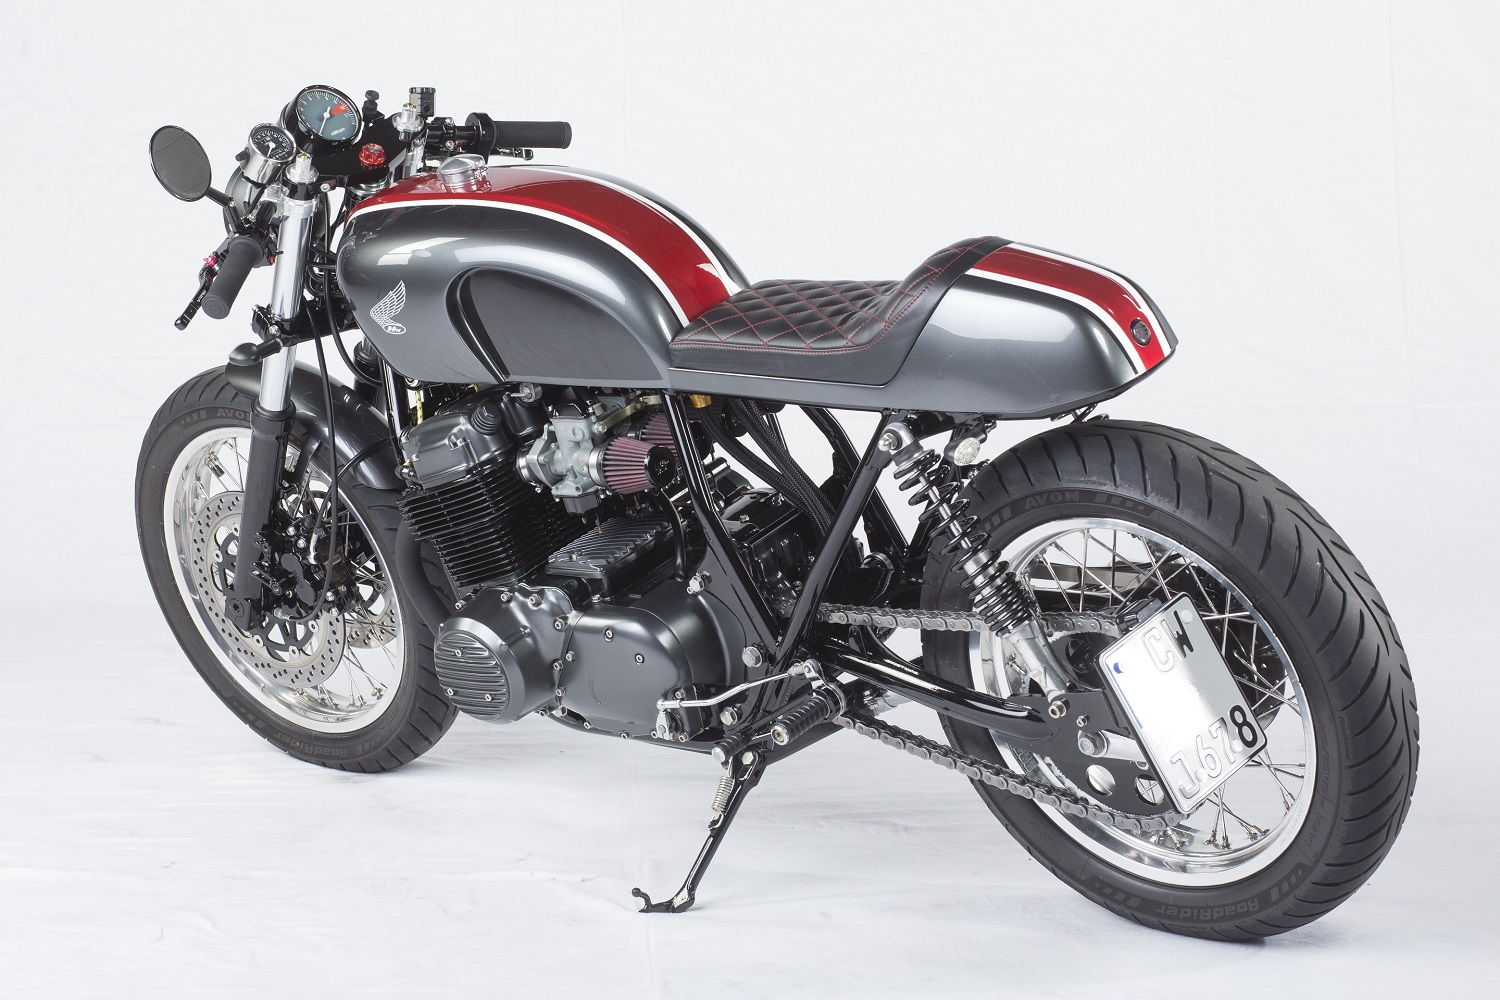 Honda Cb750 Cafe Racer >> This Cb750 Cafe Racer Is One Of The Best You Are Ever Likely To See